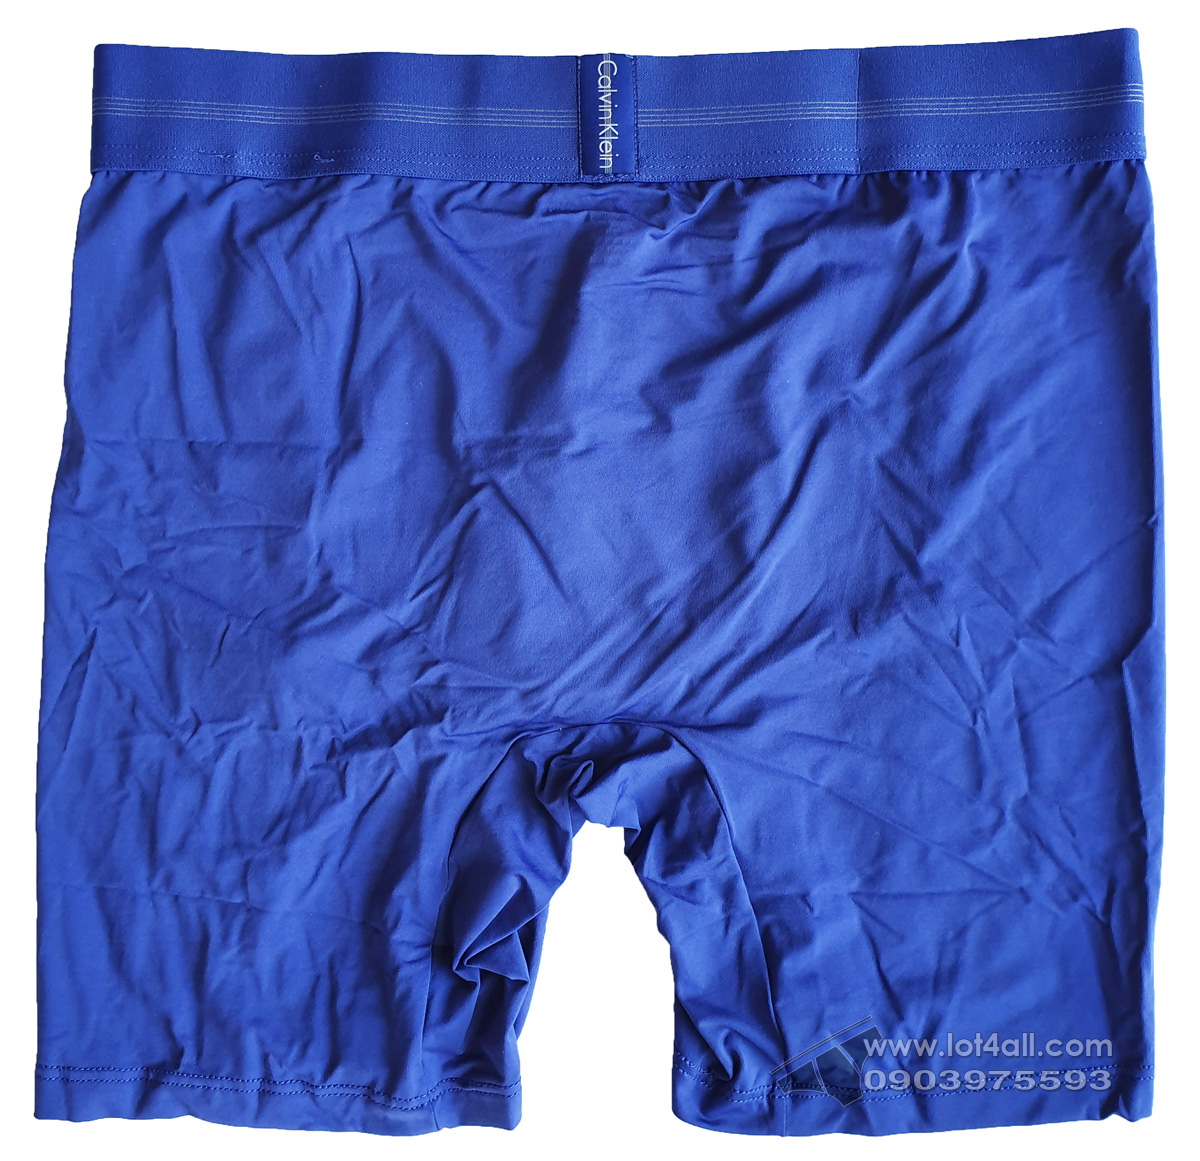 Quần lót nam Calvin Klein NB1487 Focused Fit Micro Boxer Brief Blue Nova